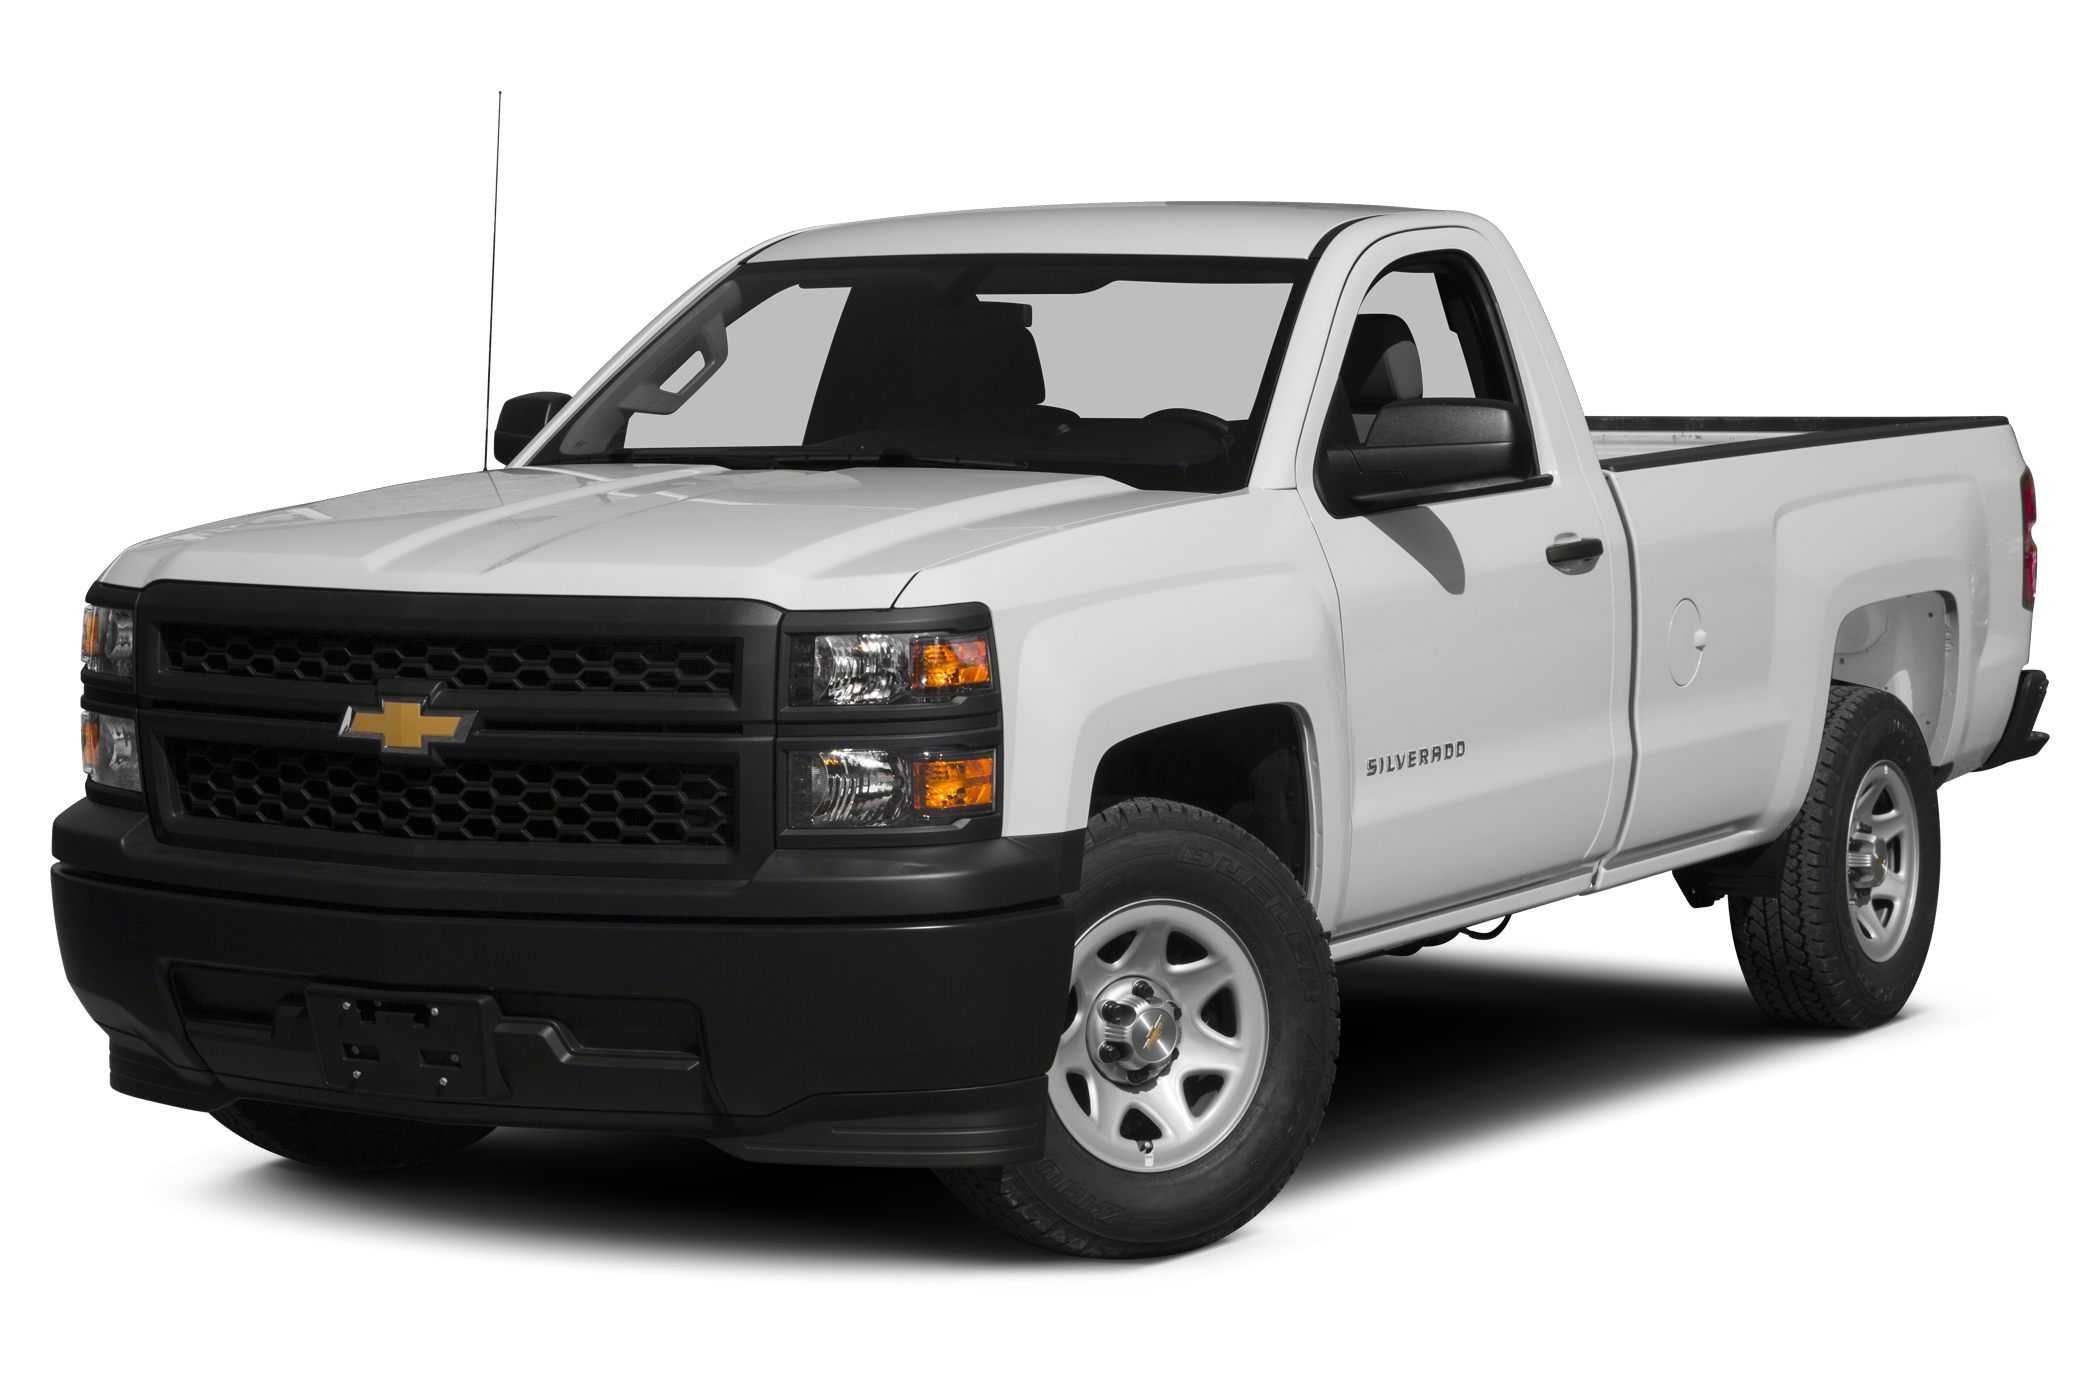 2015 Chevrolet Silverado 1500 1LT Extended Cab Pickup for sale in Clifton Park for $42,865 with 4 miles